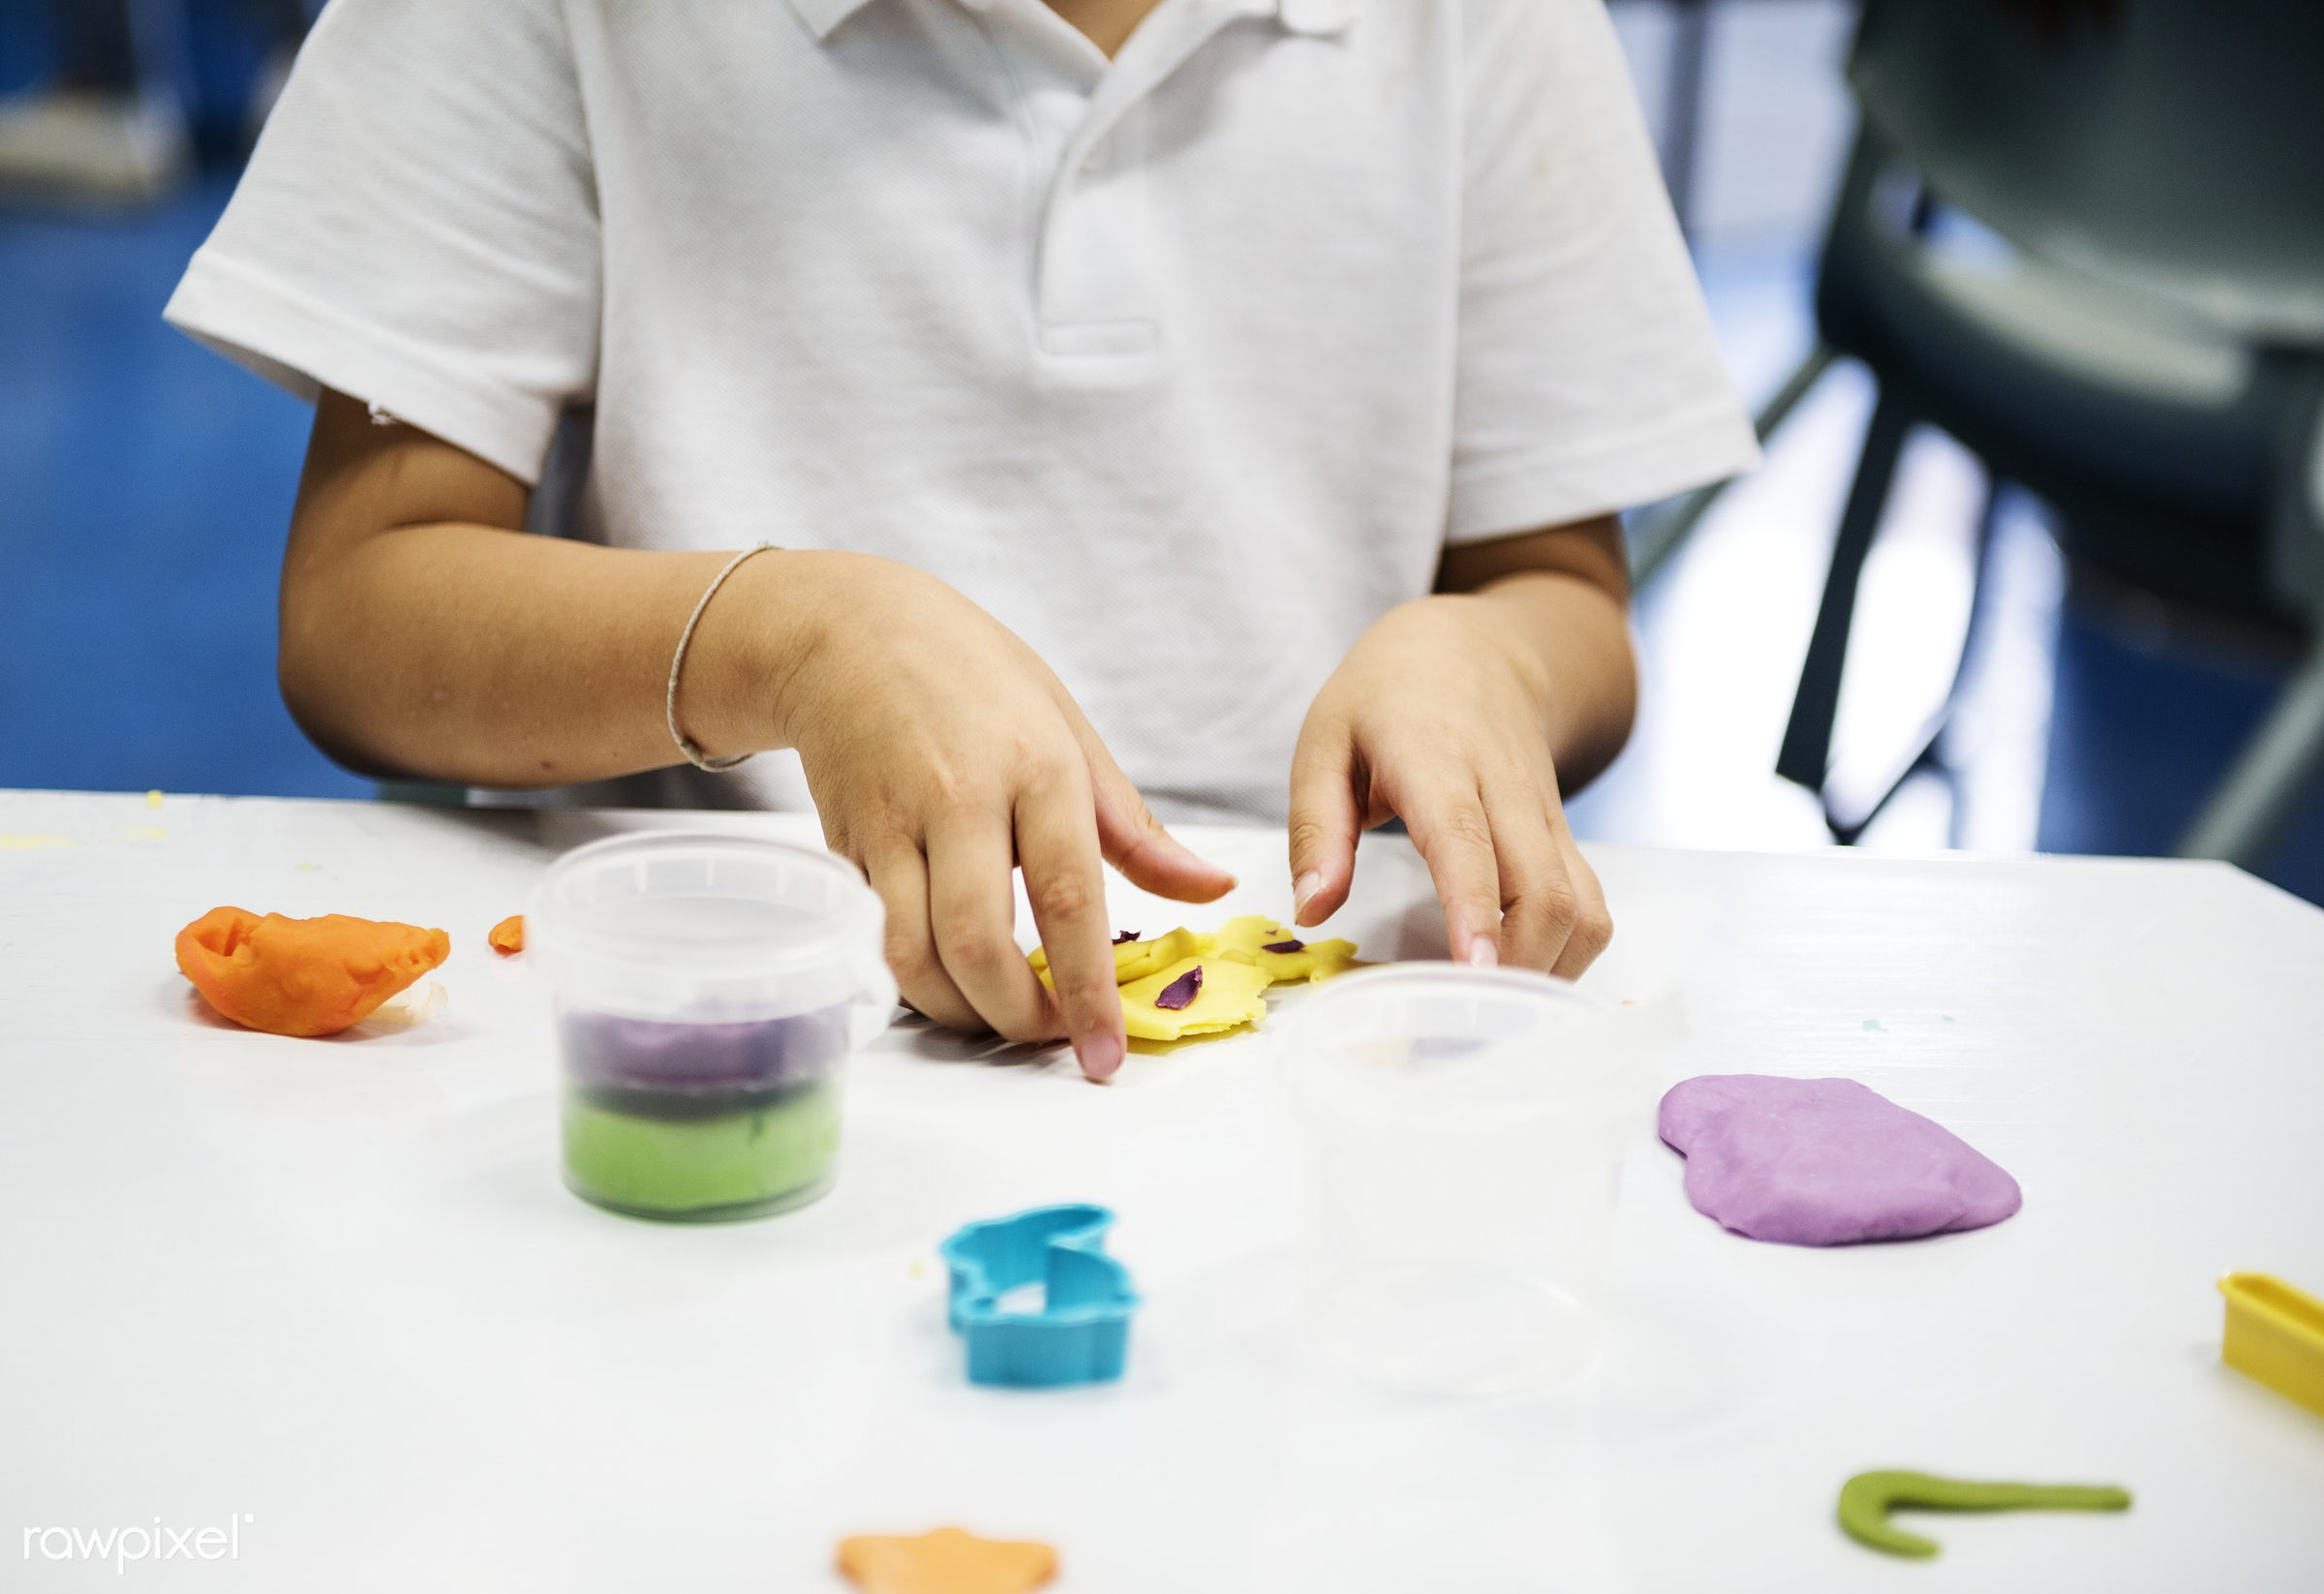 Kids playing with clay - clay, mold, arts, colorful, children, playing, hands, alone, preschool, ideas, students, diversity...